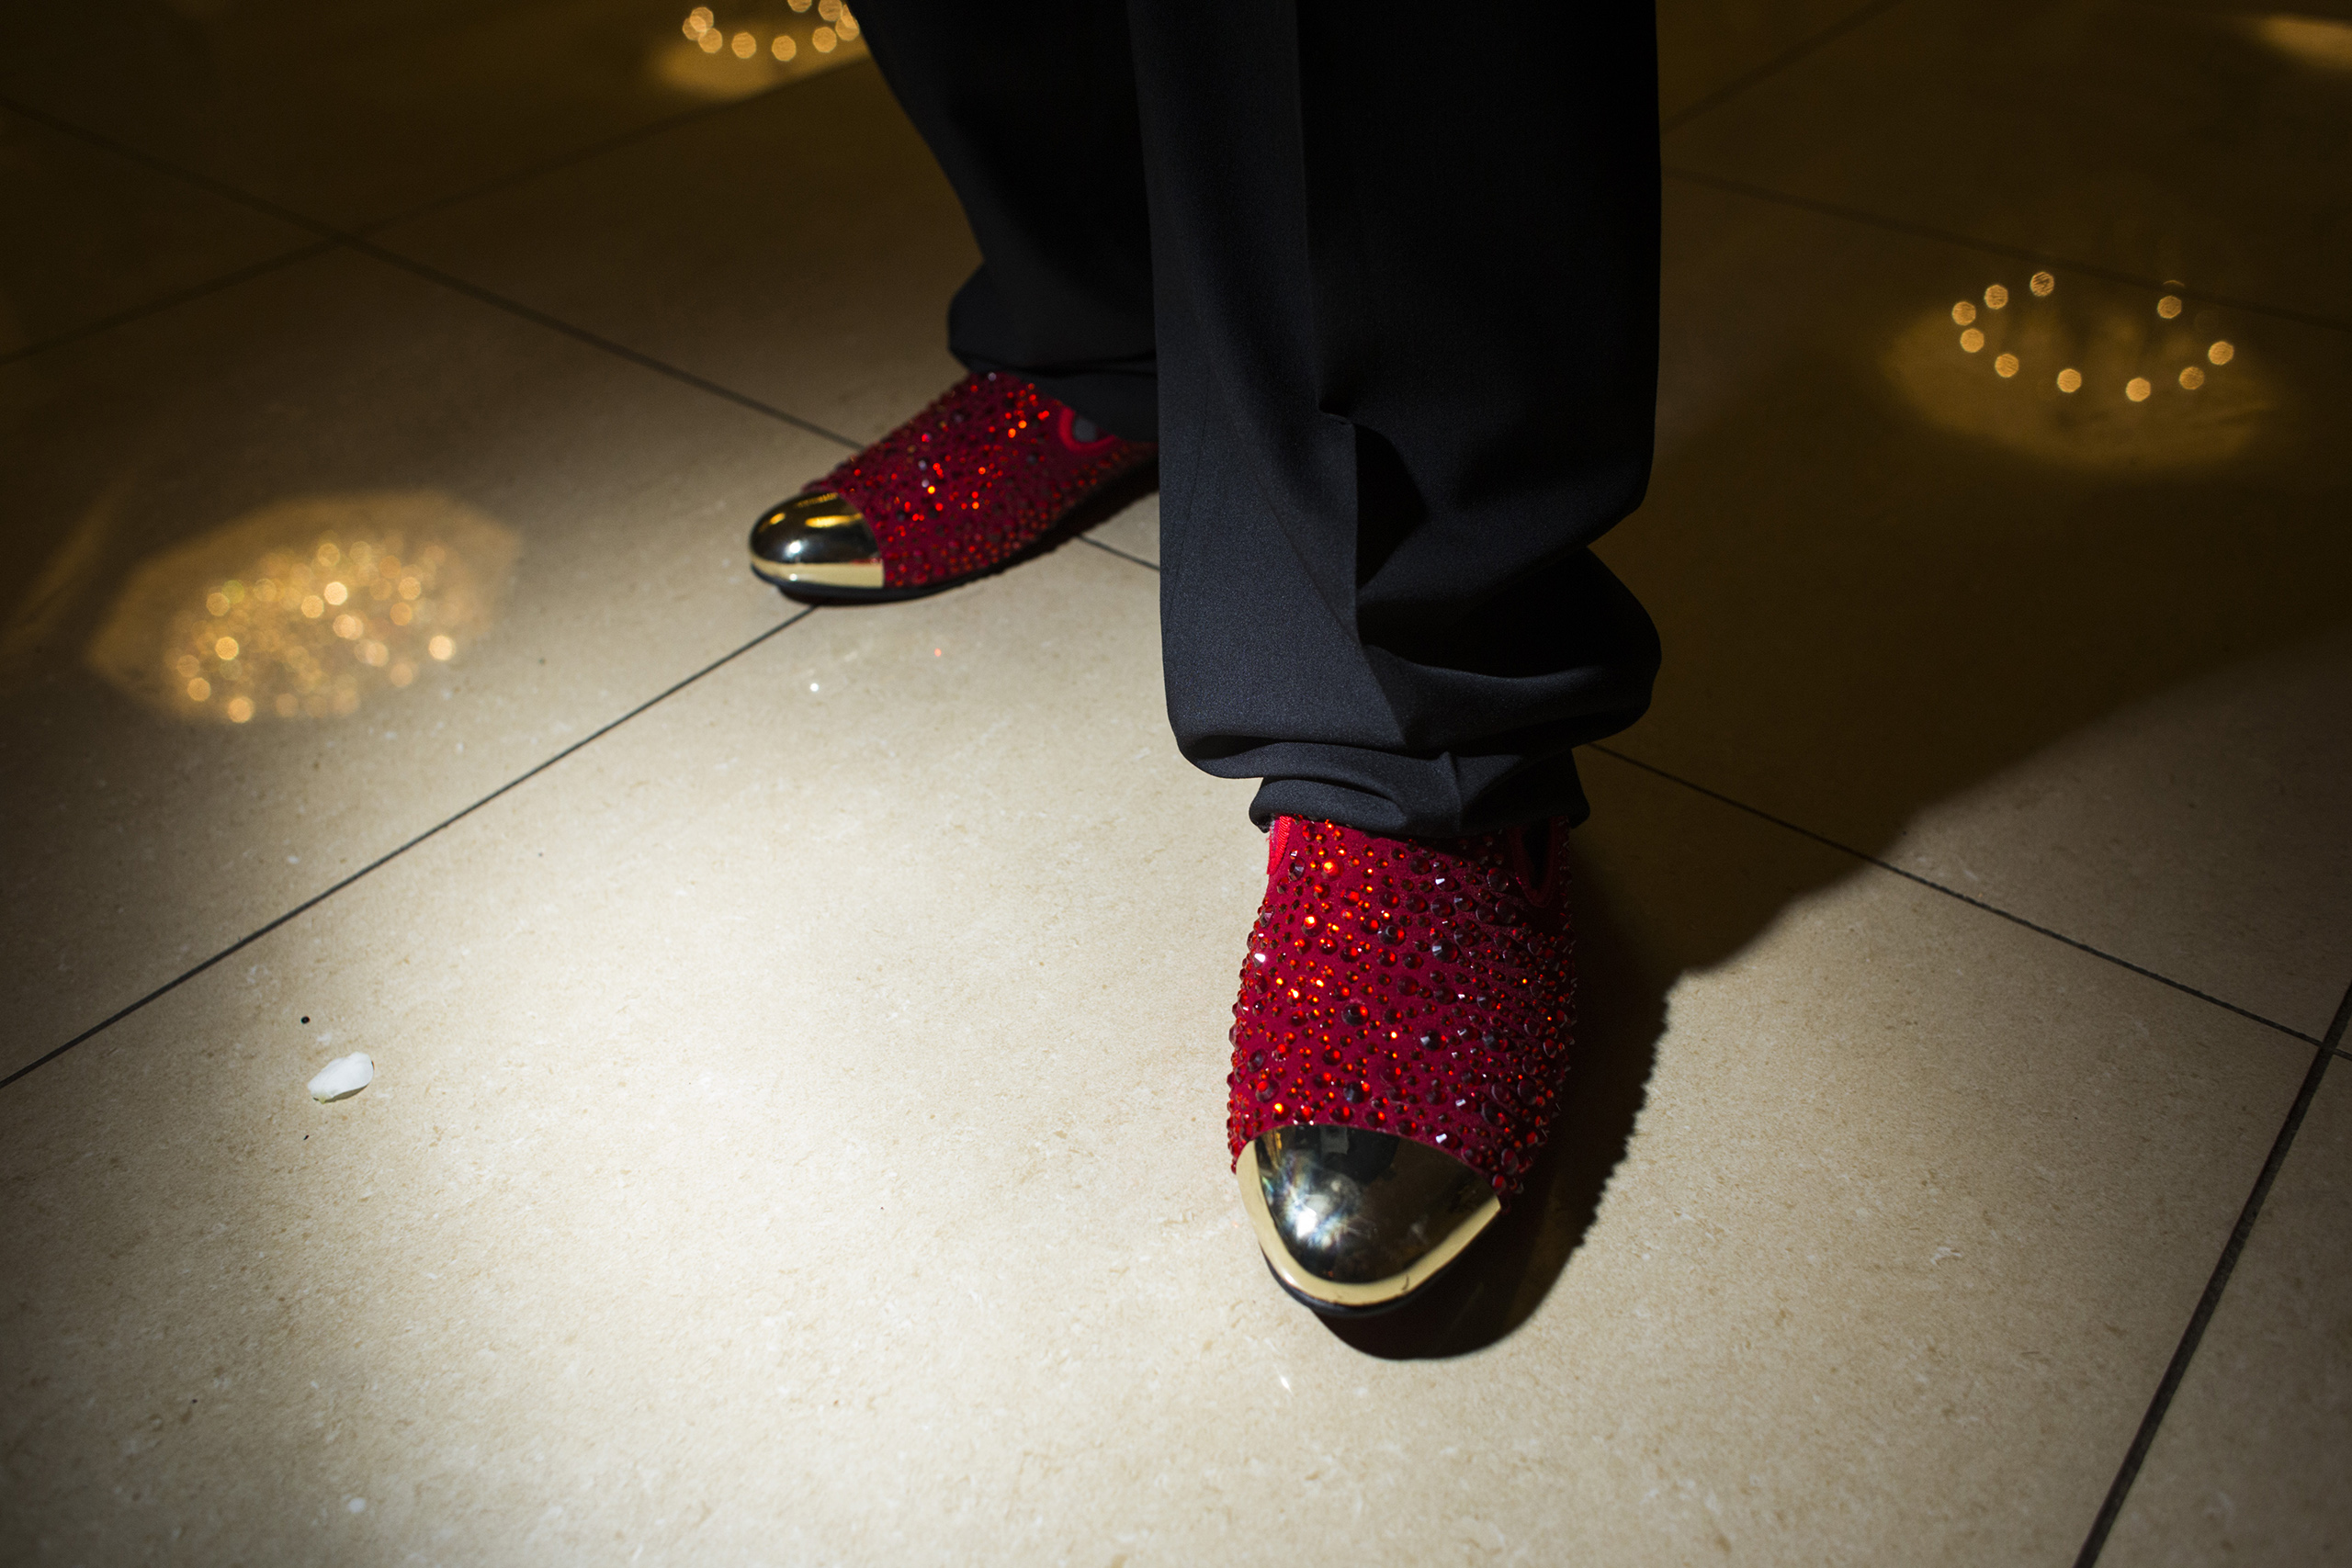 A Beecher High School student shows off his bejeweled red shoes during prom at the Signature Chop House in Flushing, Mich., May 20, 2016.